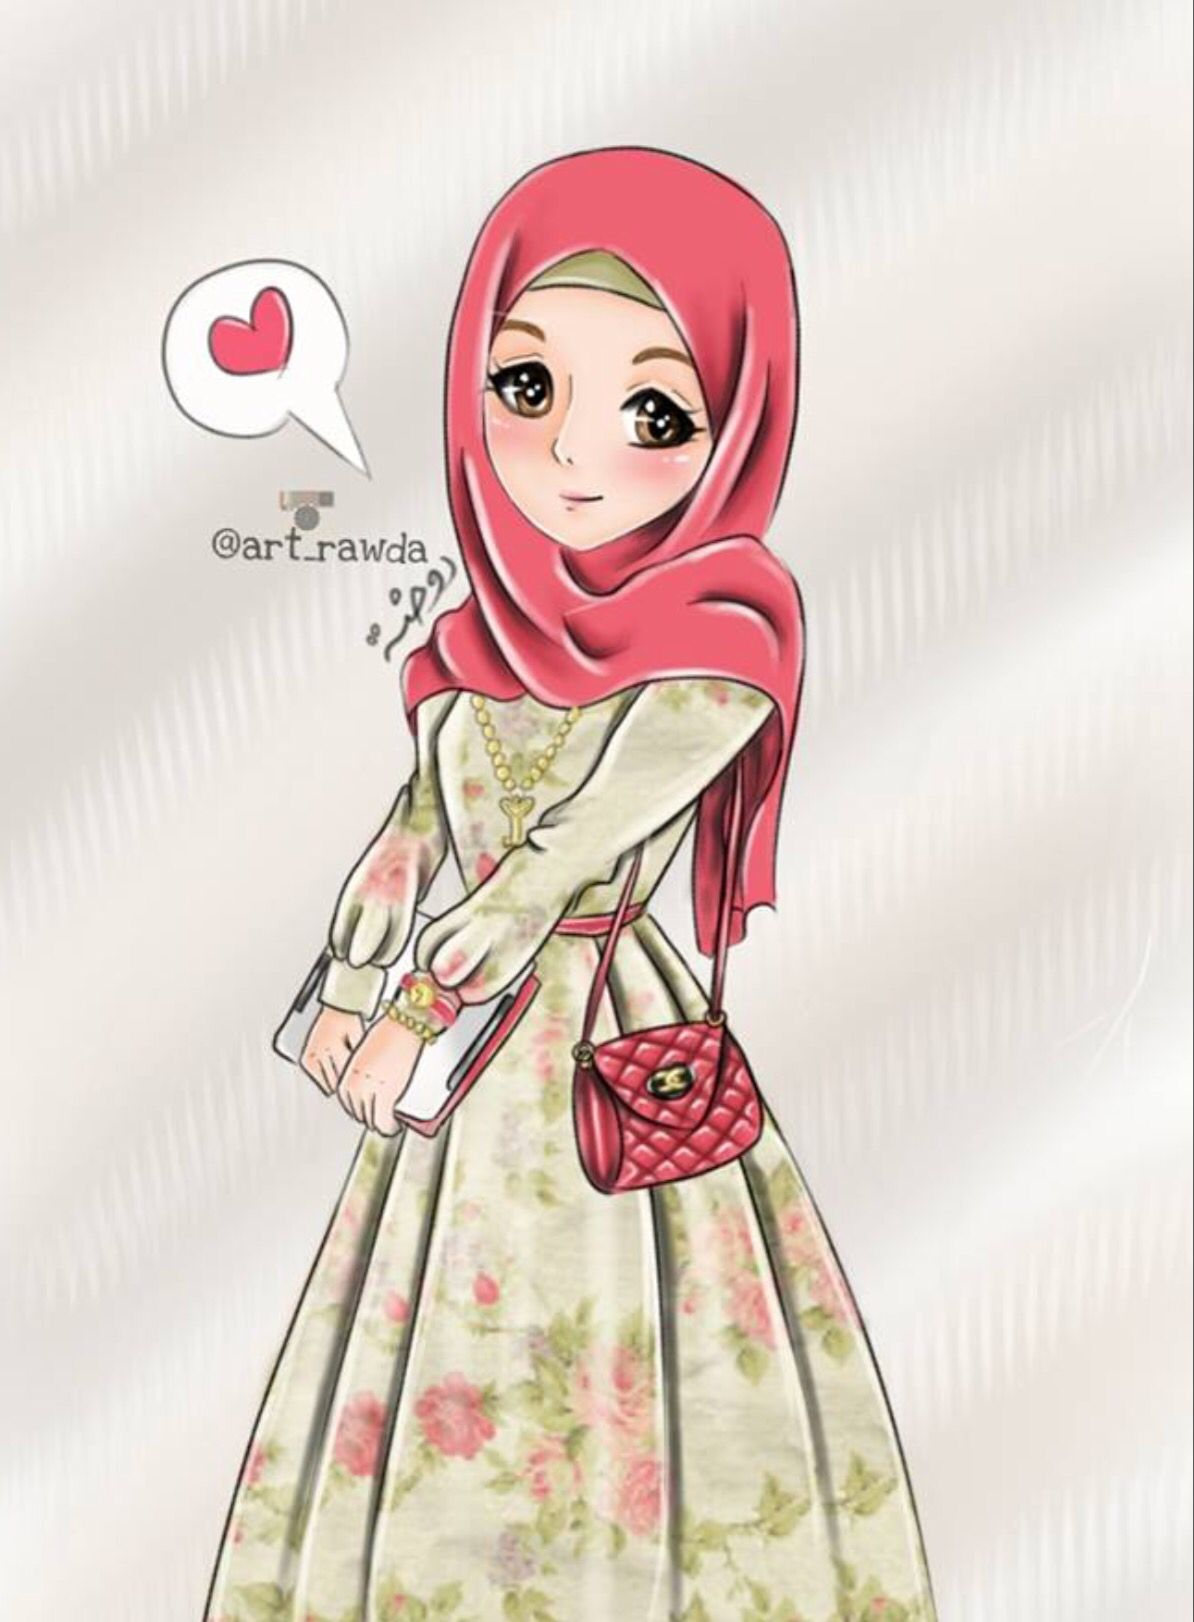 Hijab anime. This looks so pretty.